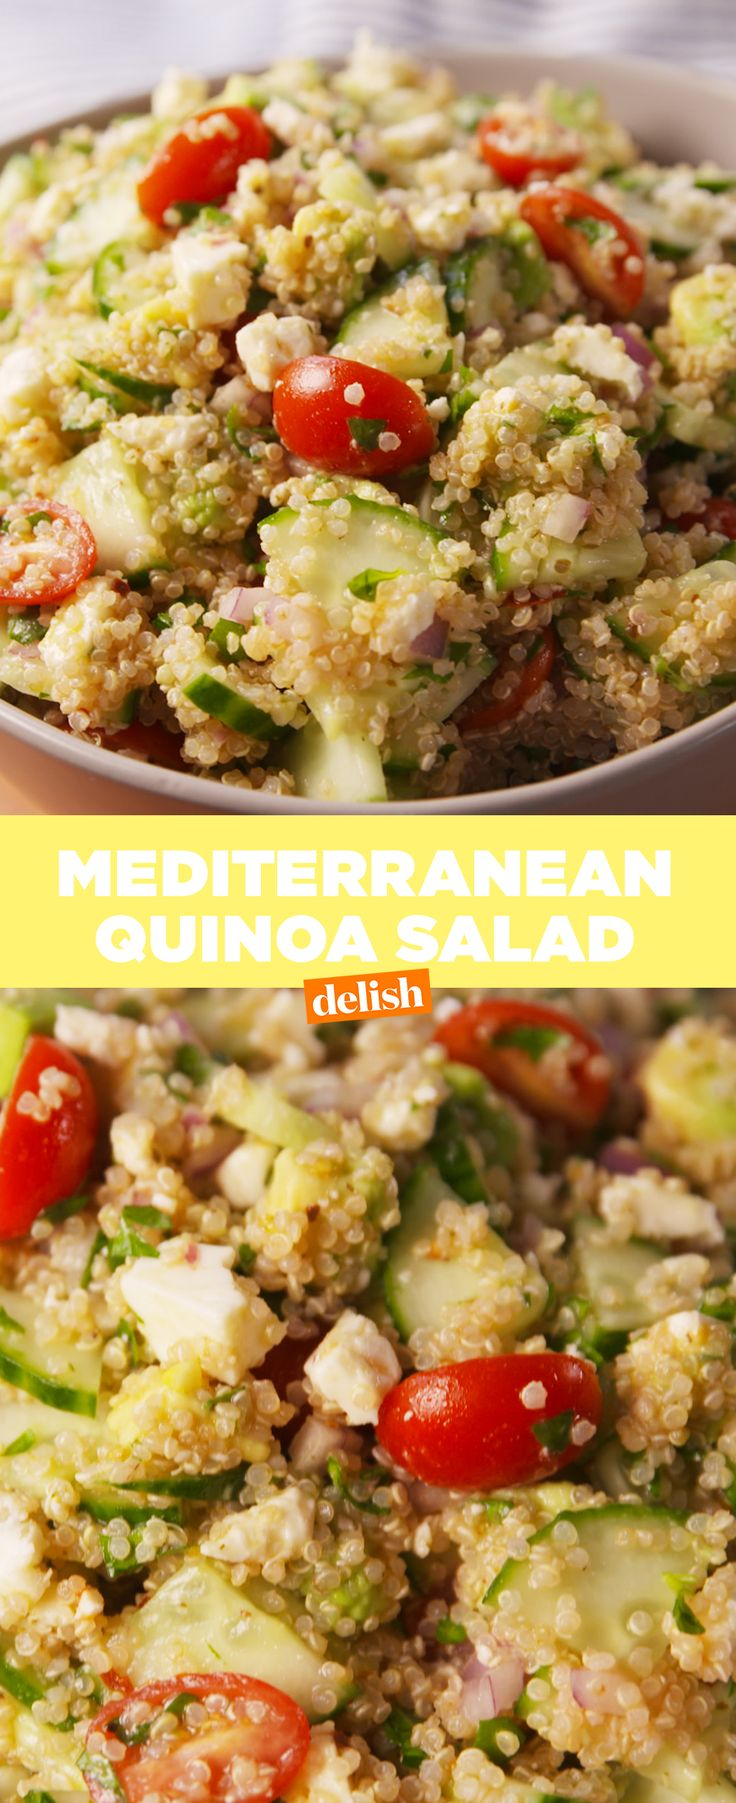 FINALLY, a quinoa recipe that'll actually make you want to eat healthy. Get the recipe from Delish.com.